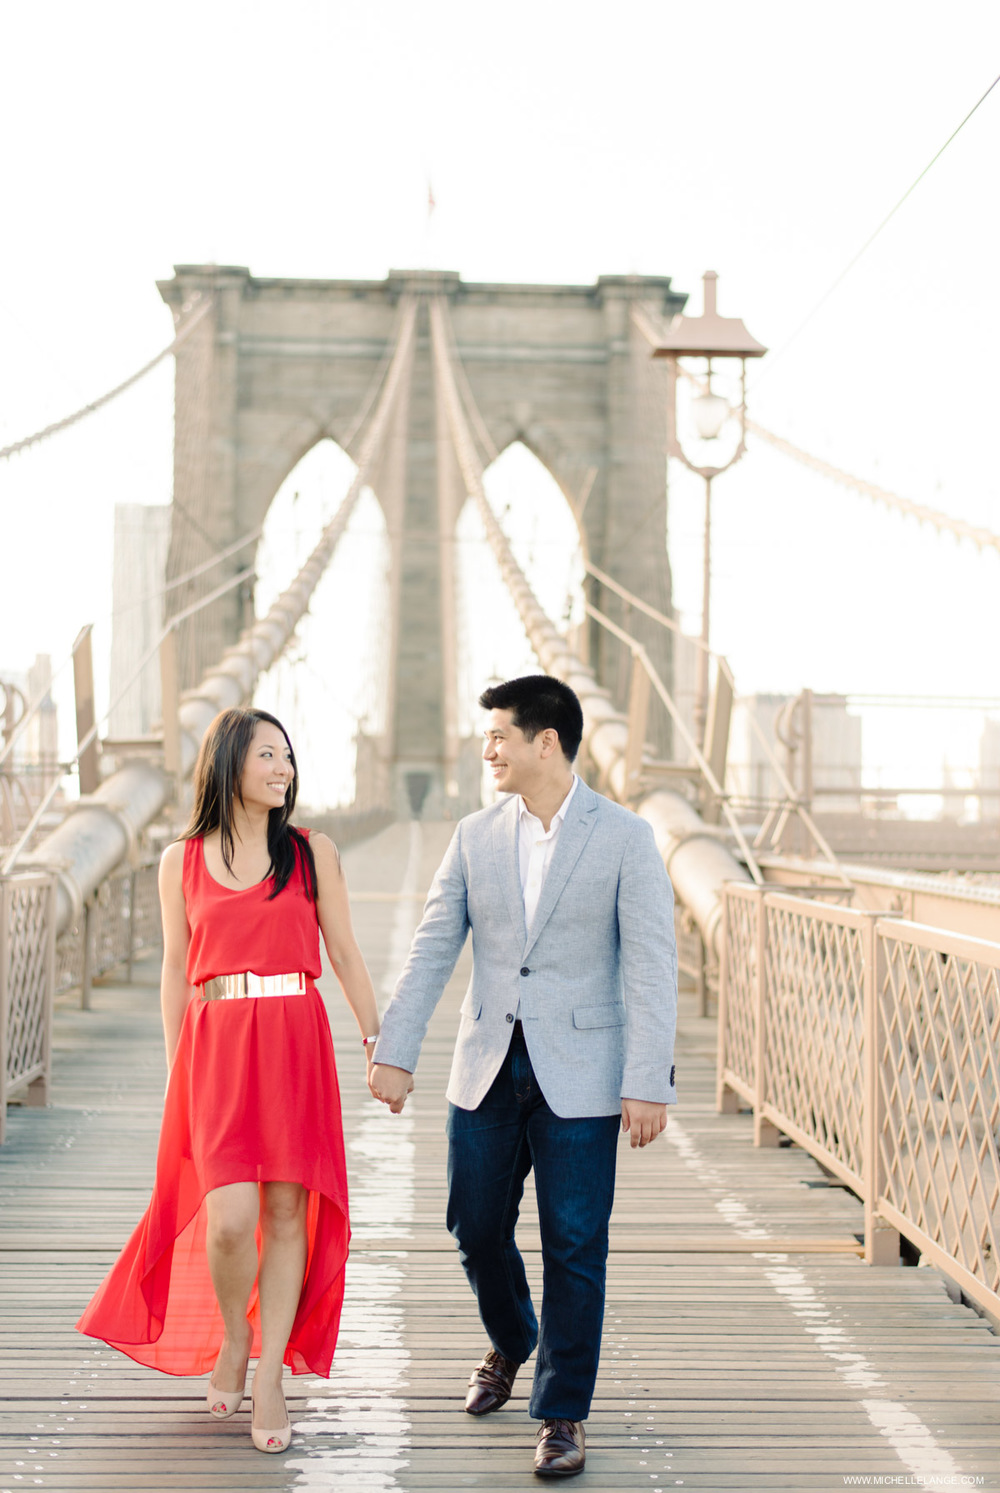 Brooklyn Bridge New York City Engagement Photographer